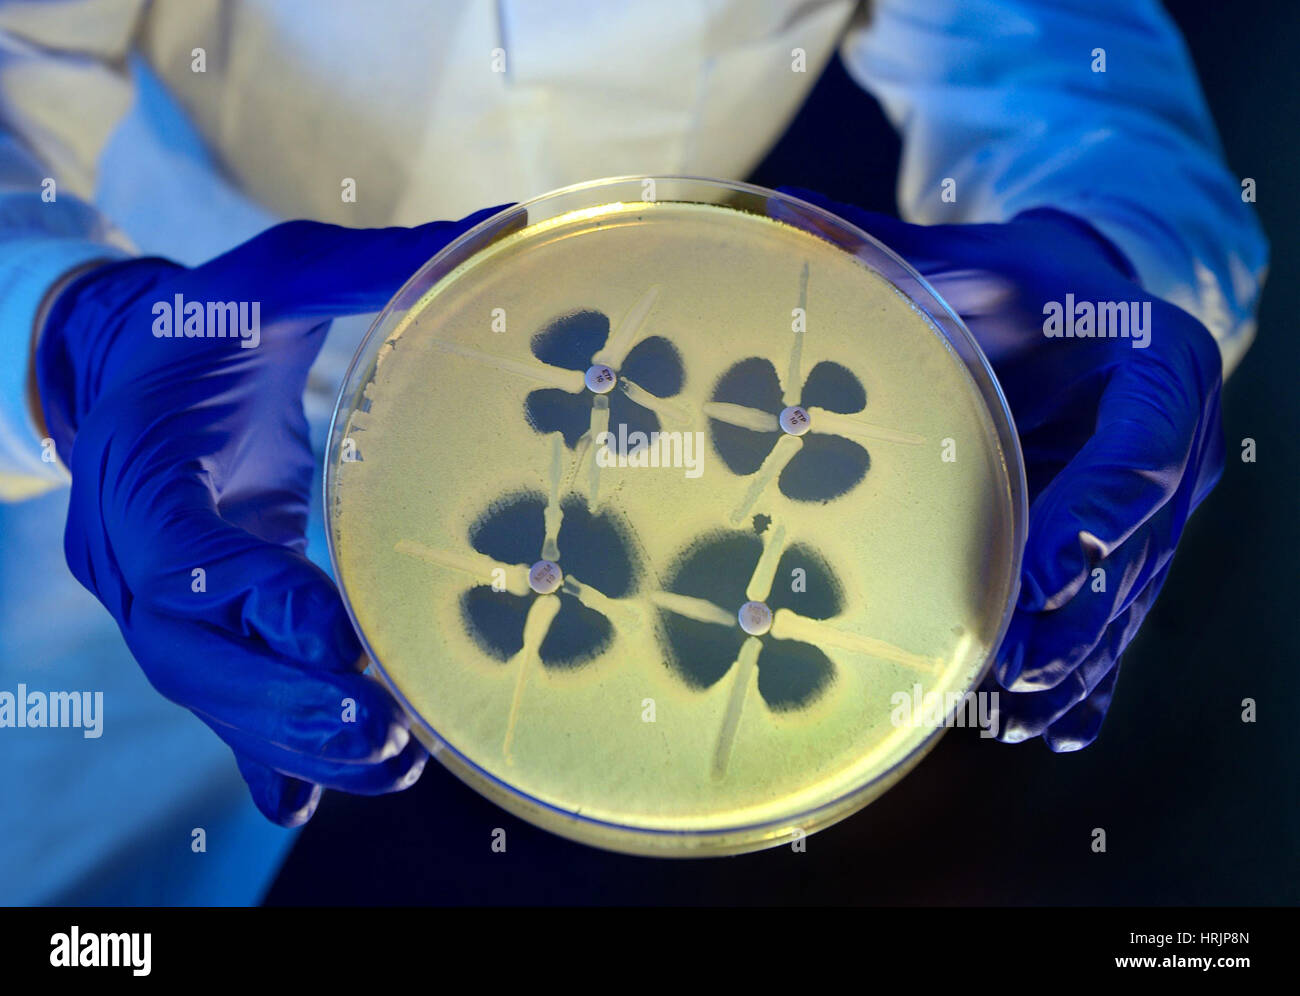 Antibiotic-Resistant Research, 2014 - Stock Image